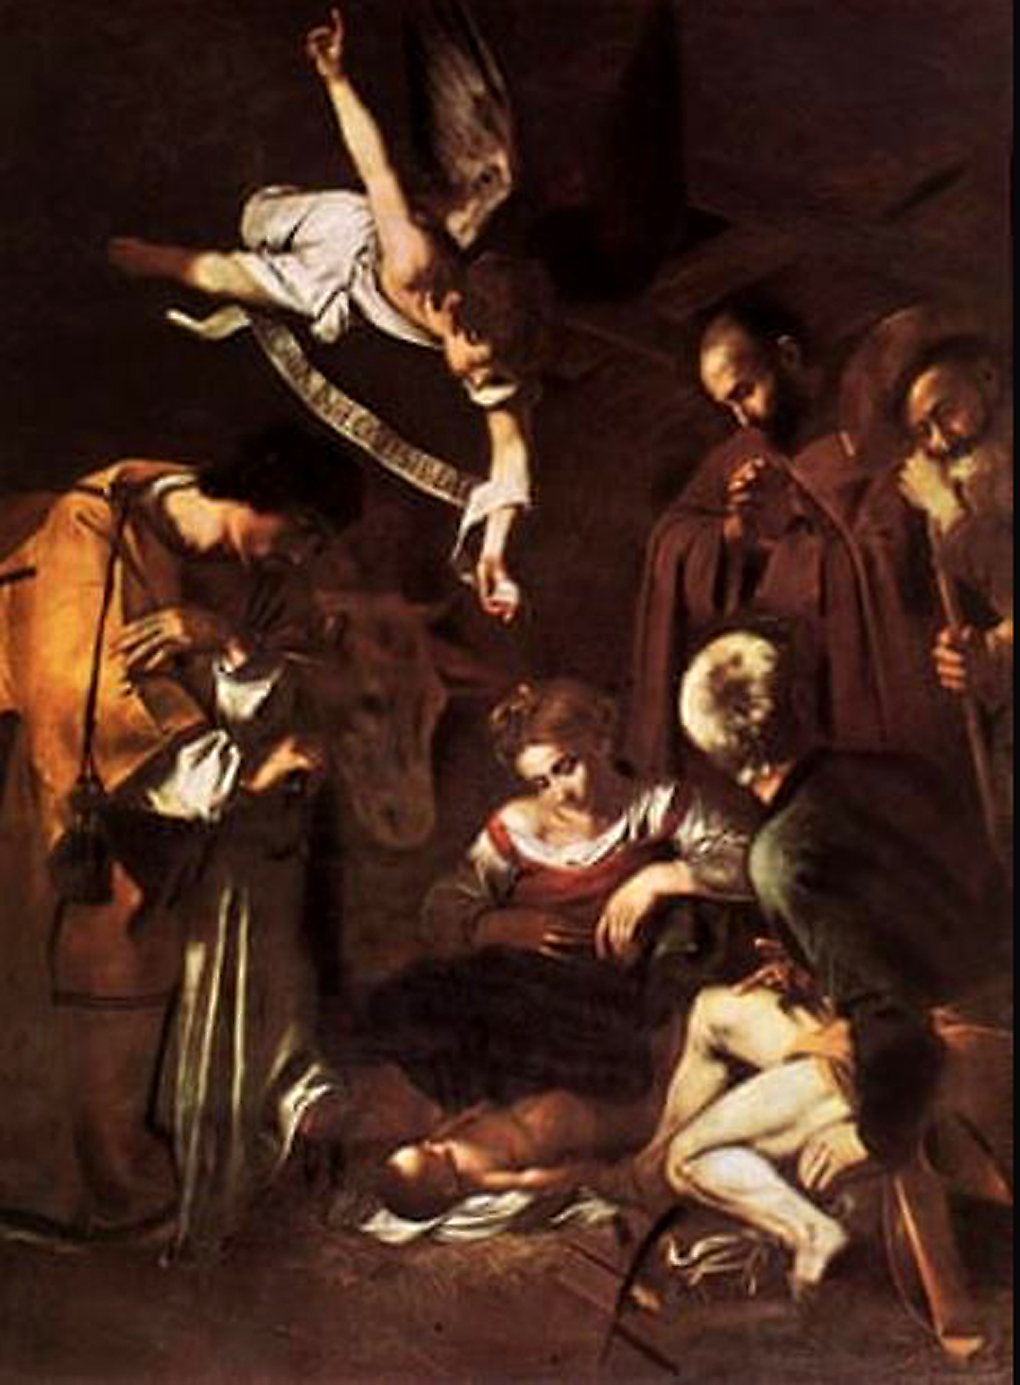 Caravaggio's masterpiece Nativity with St Francis and St Lawrence. Art Collection 2 / Alamy Stock Photo, 2020.